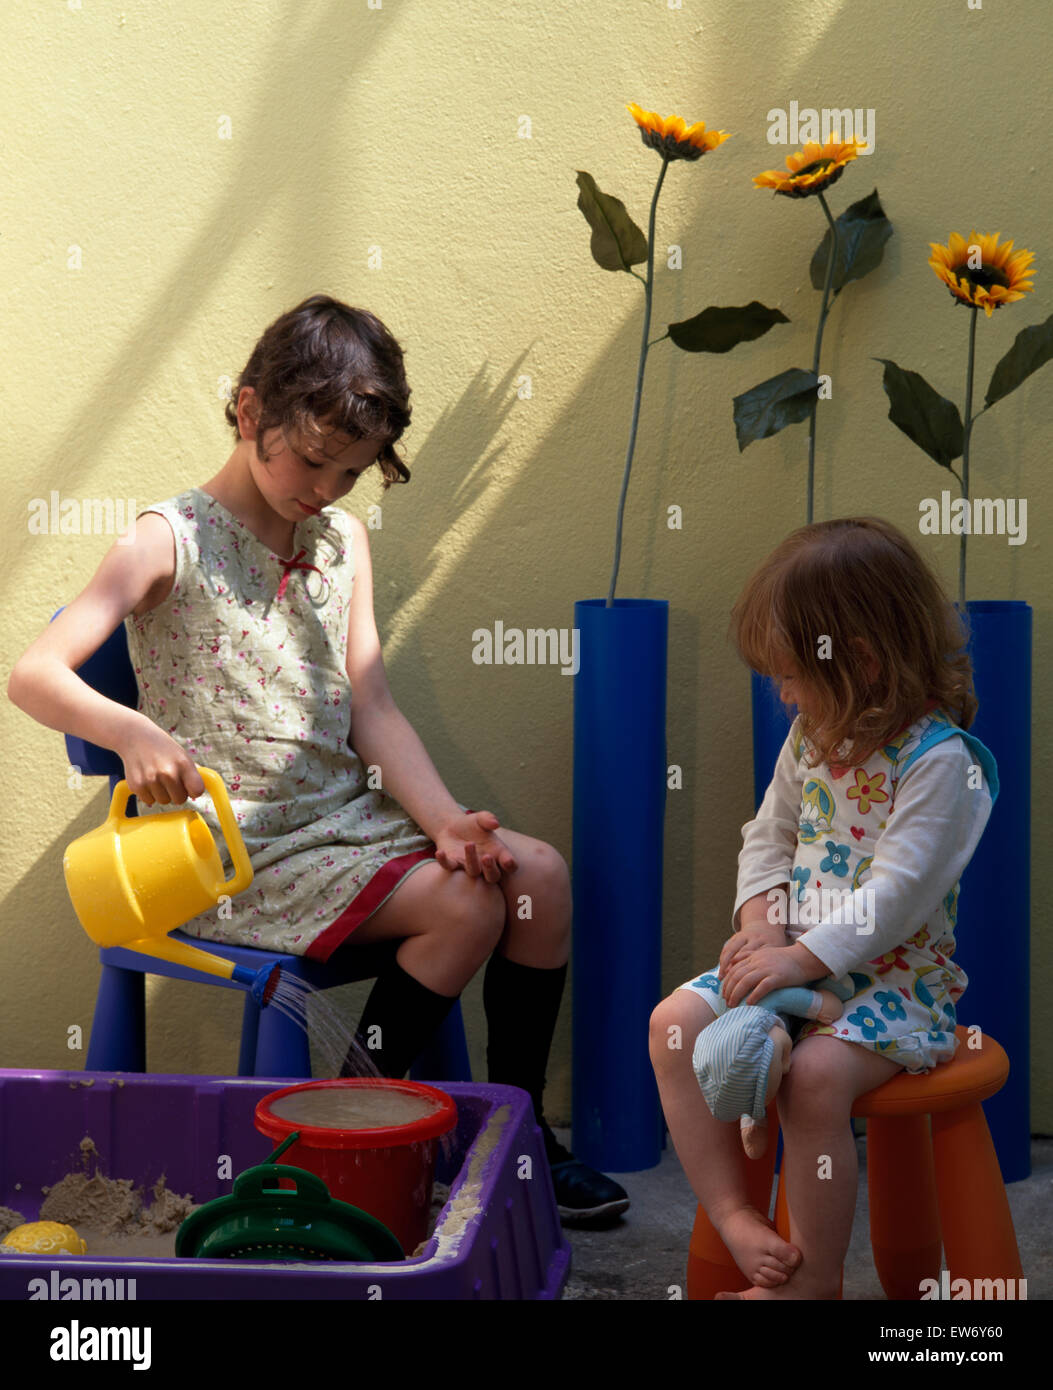 Two small girls sitting on chairs and playing with a watering can beside a sandbox - Stock Image